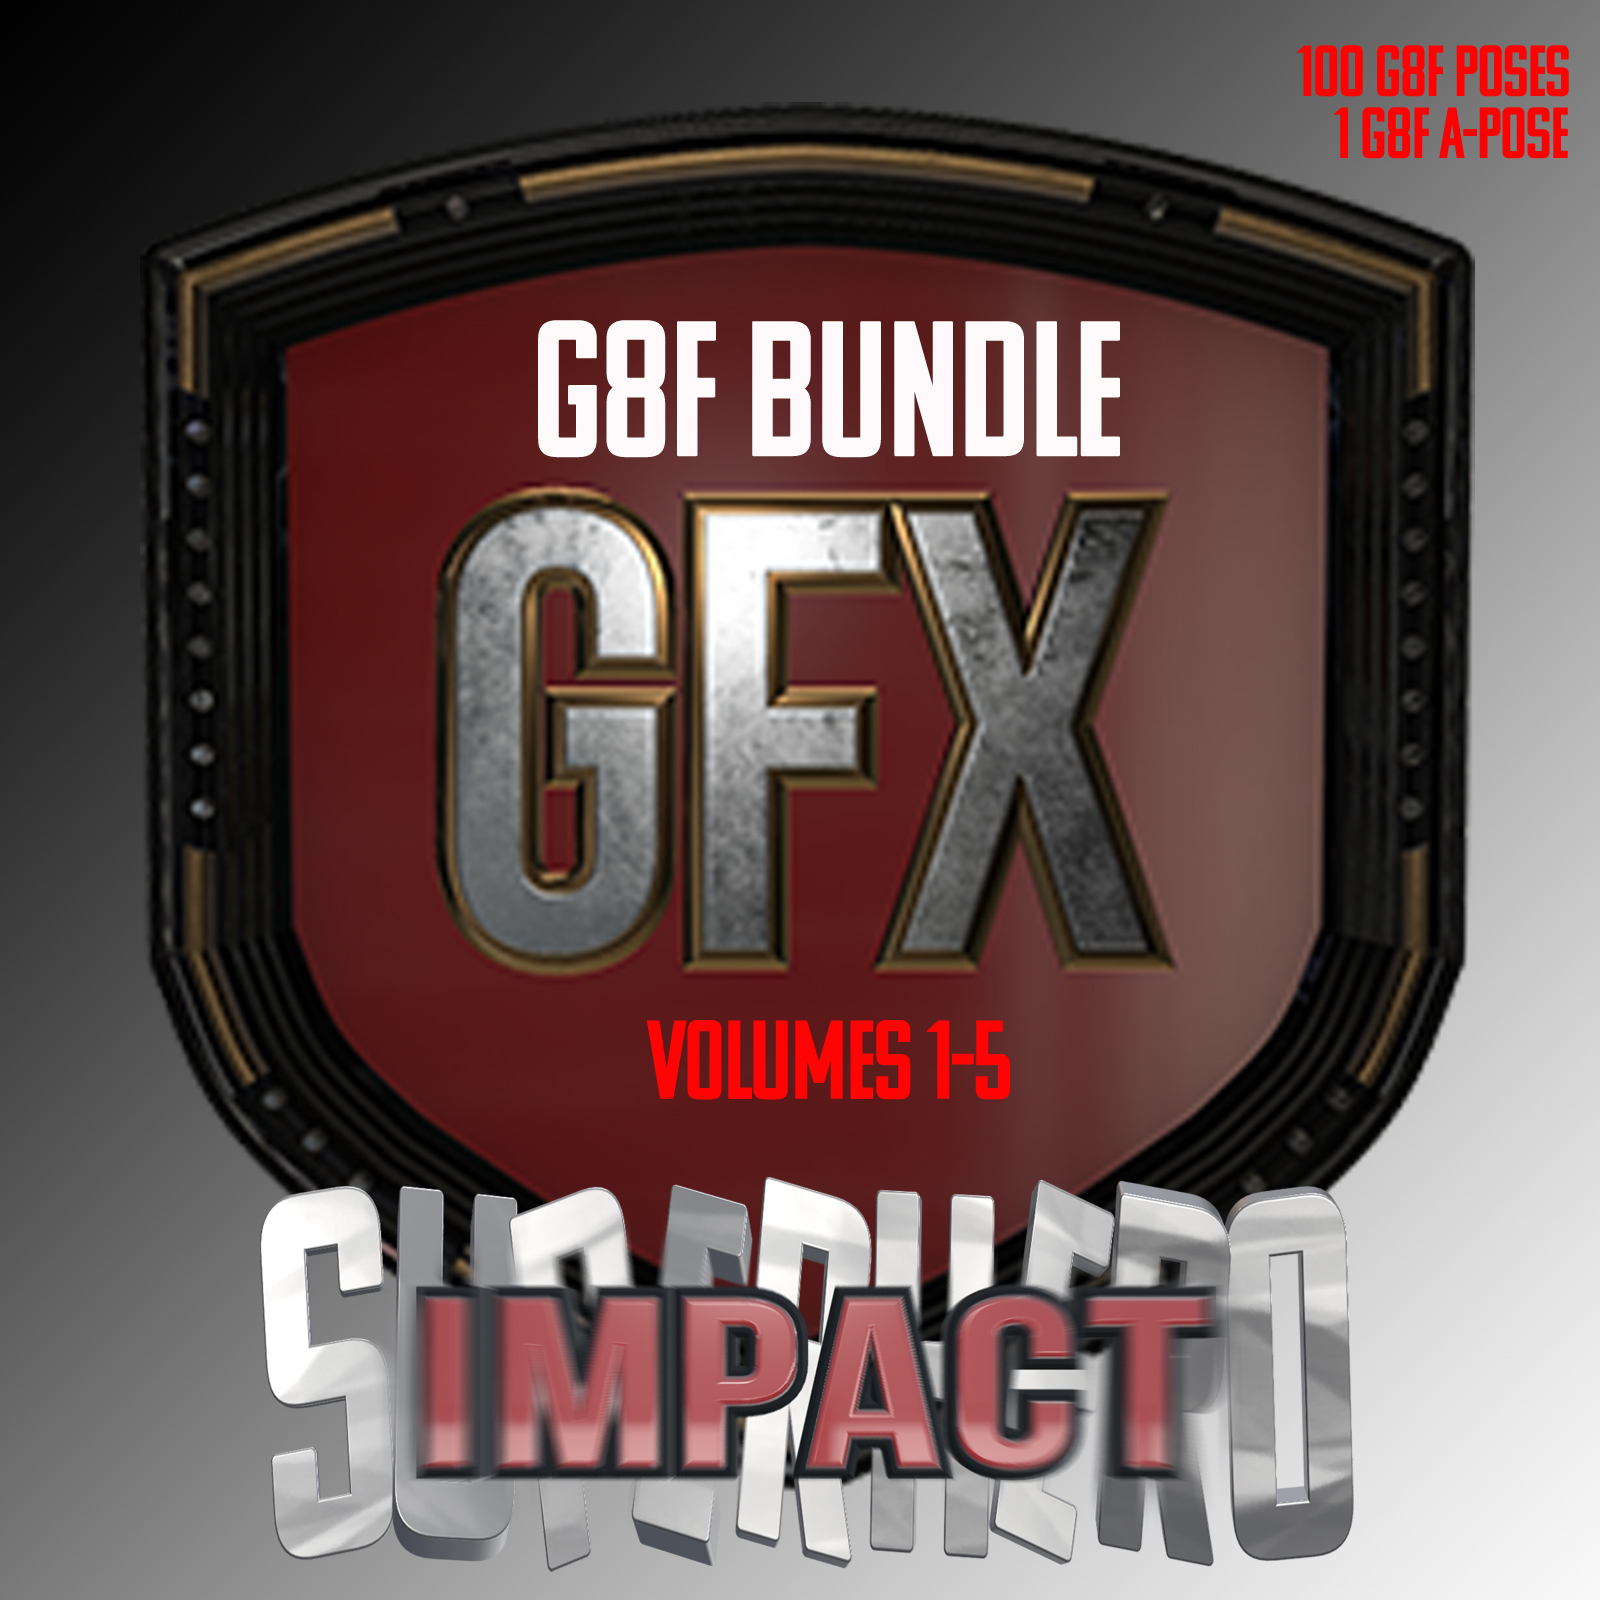 SuperHero Impact Bundle for G8F by GriffinFX